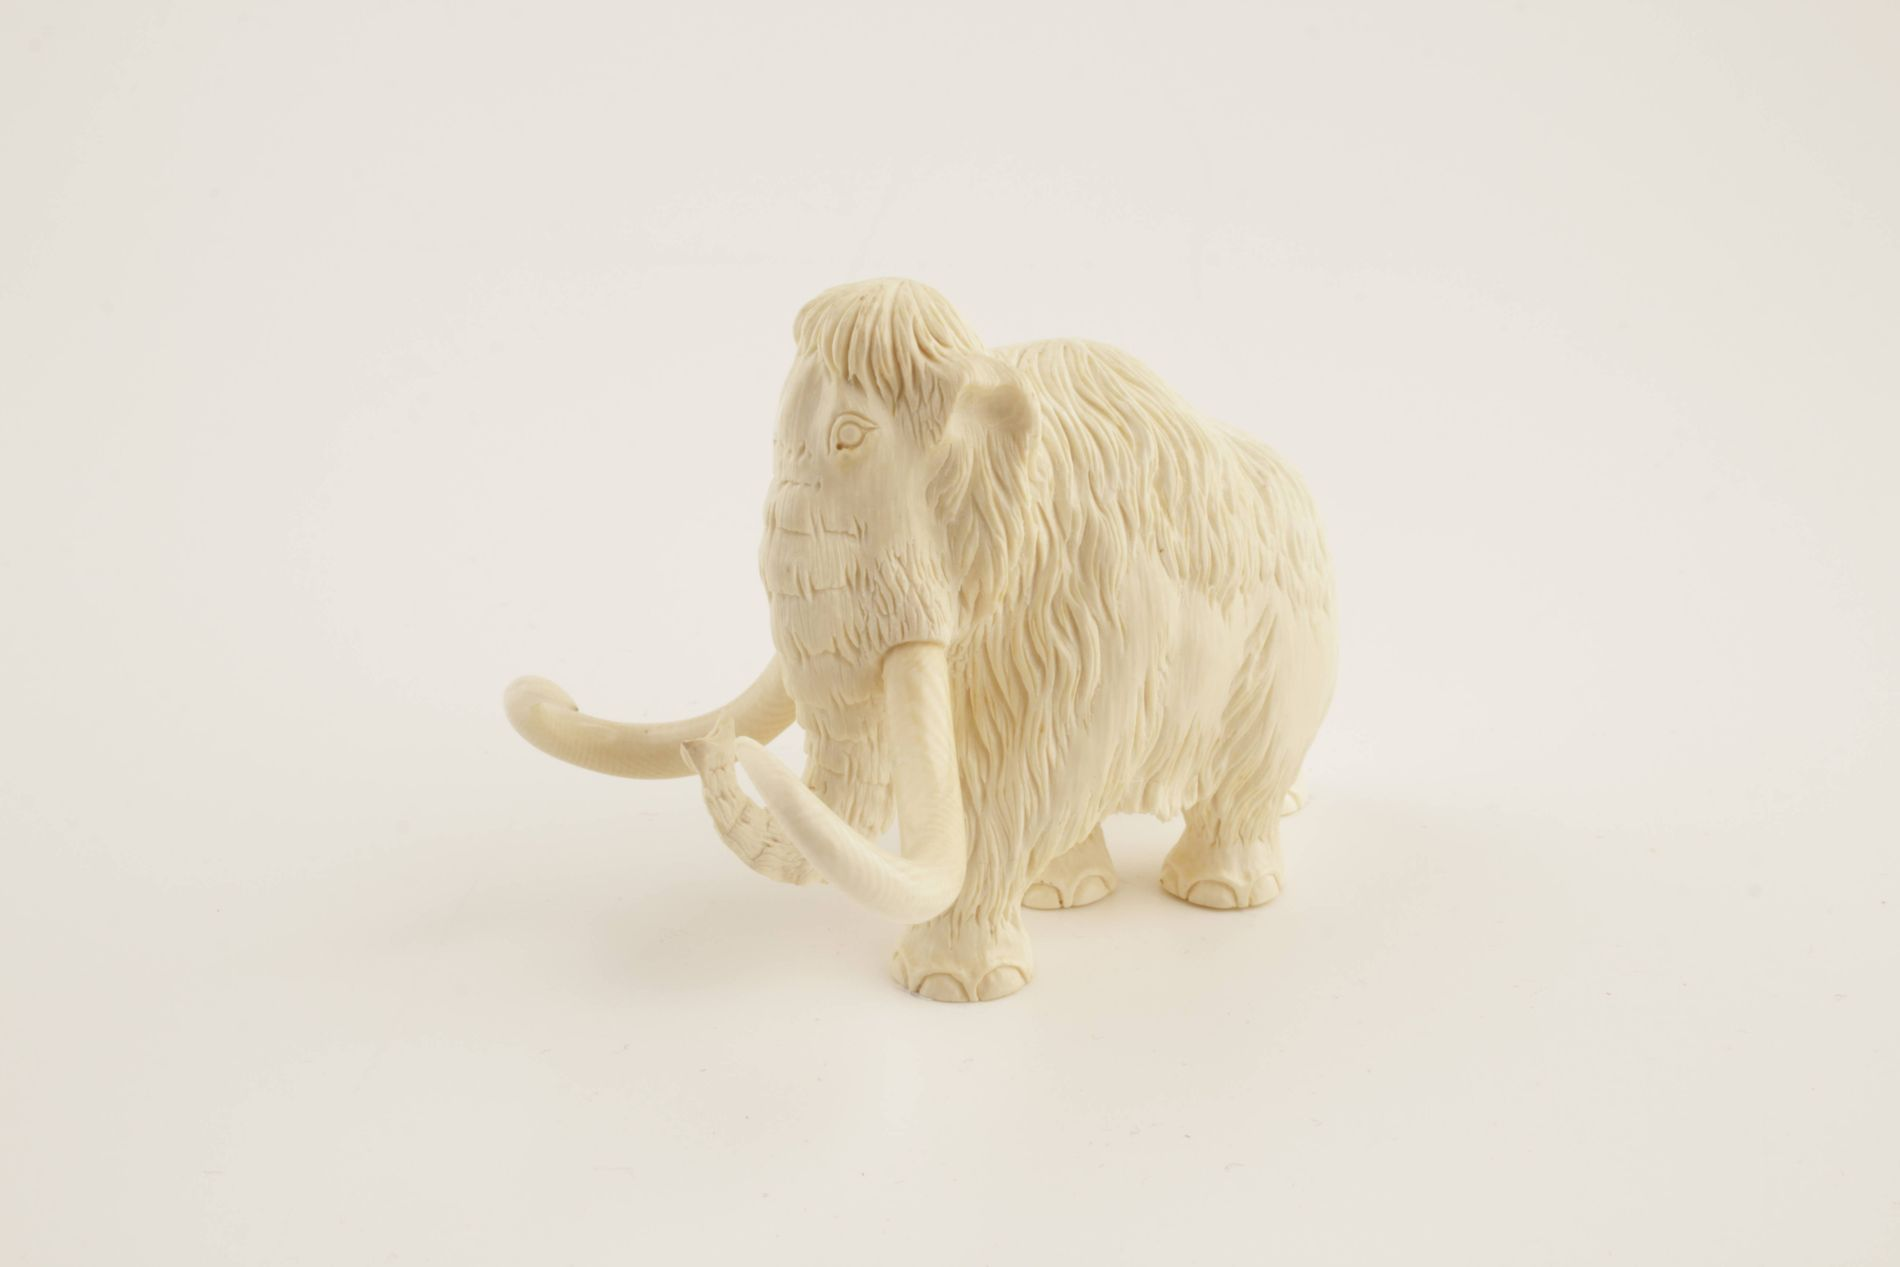 Carved woolly mammoth figurine